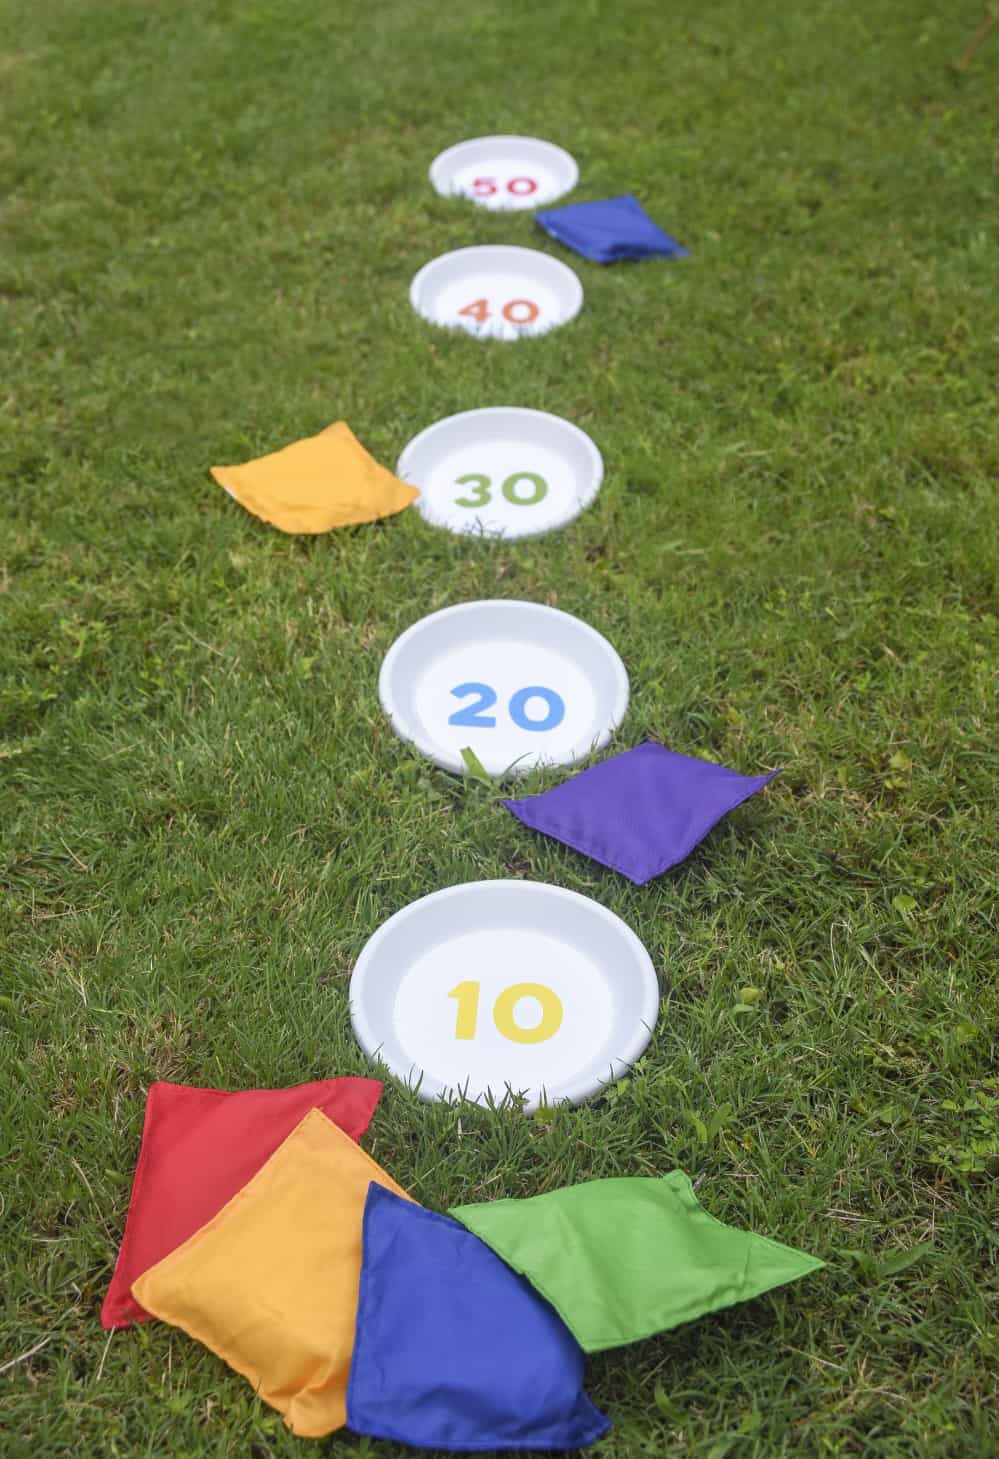 Inspired by a childhood game, I created a bean bag toss using clay saucers and a printable. It's easy to assemble and you'll be having a blast in minutes!